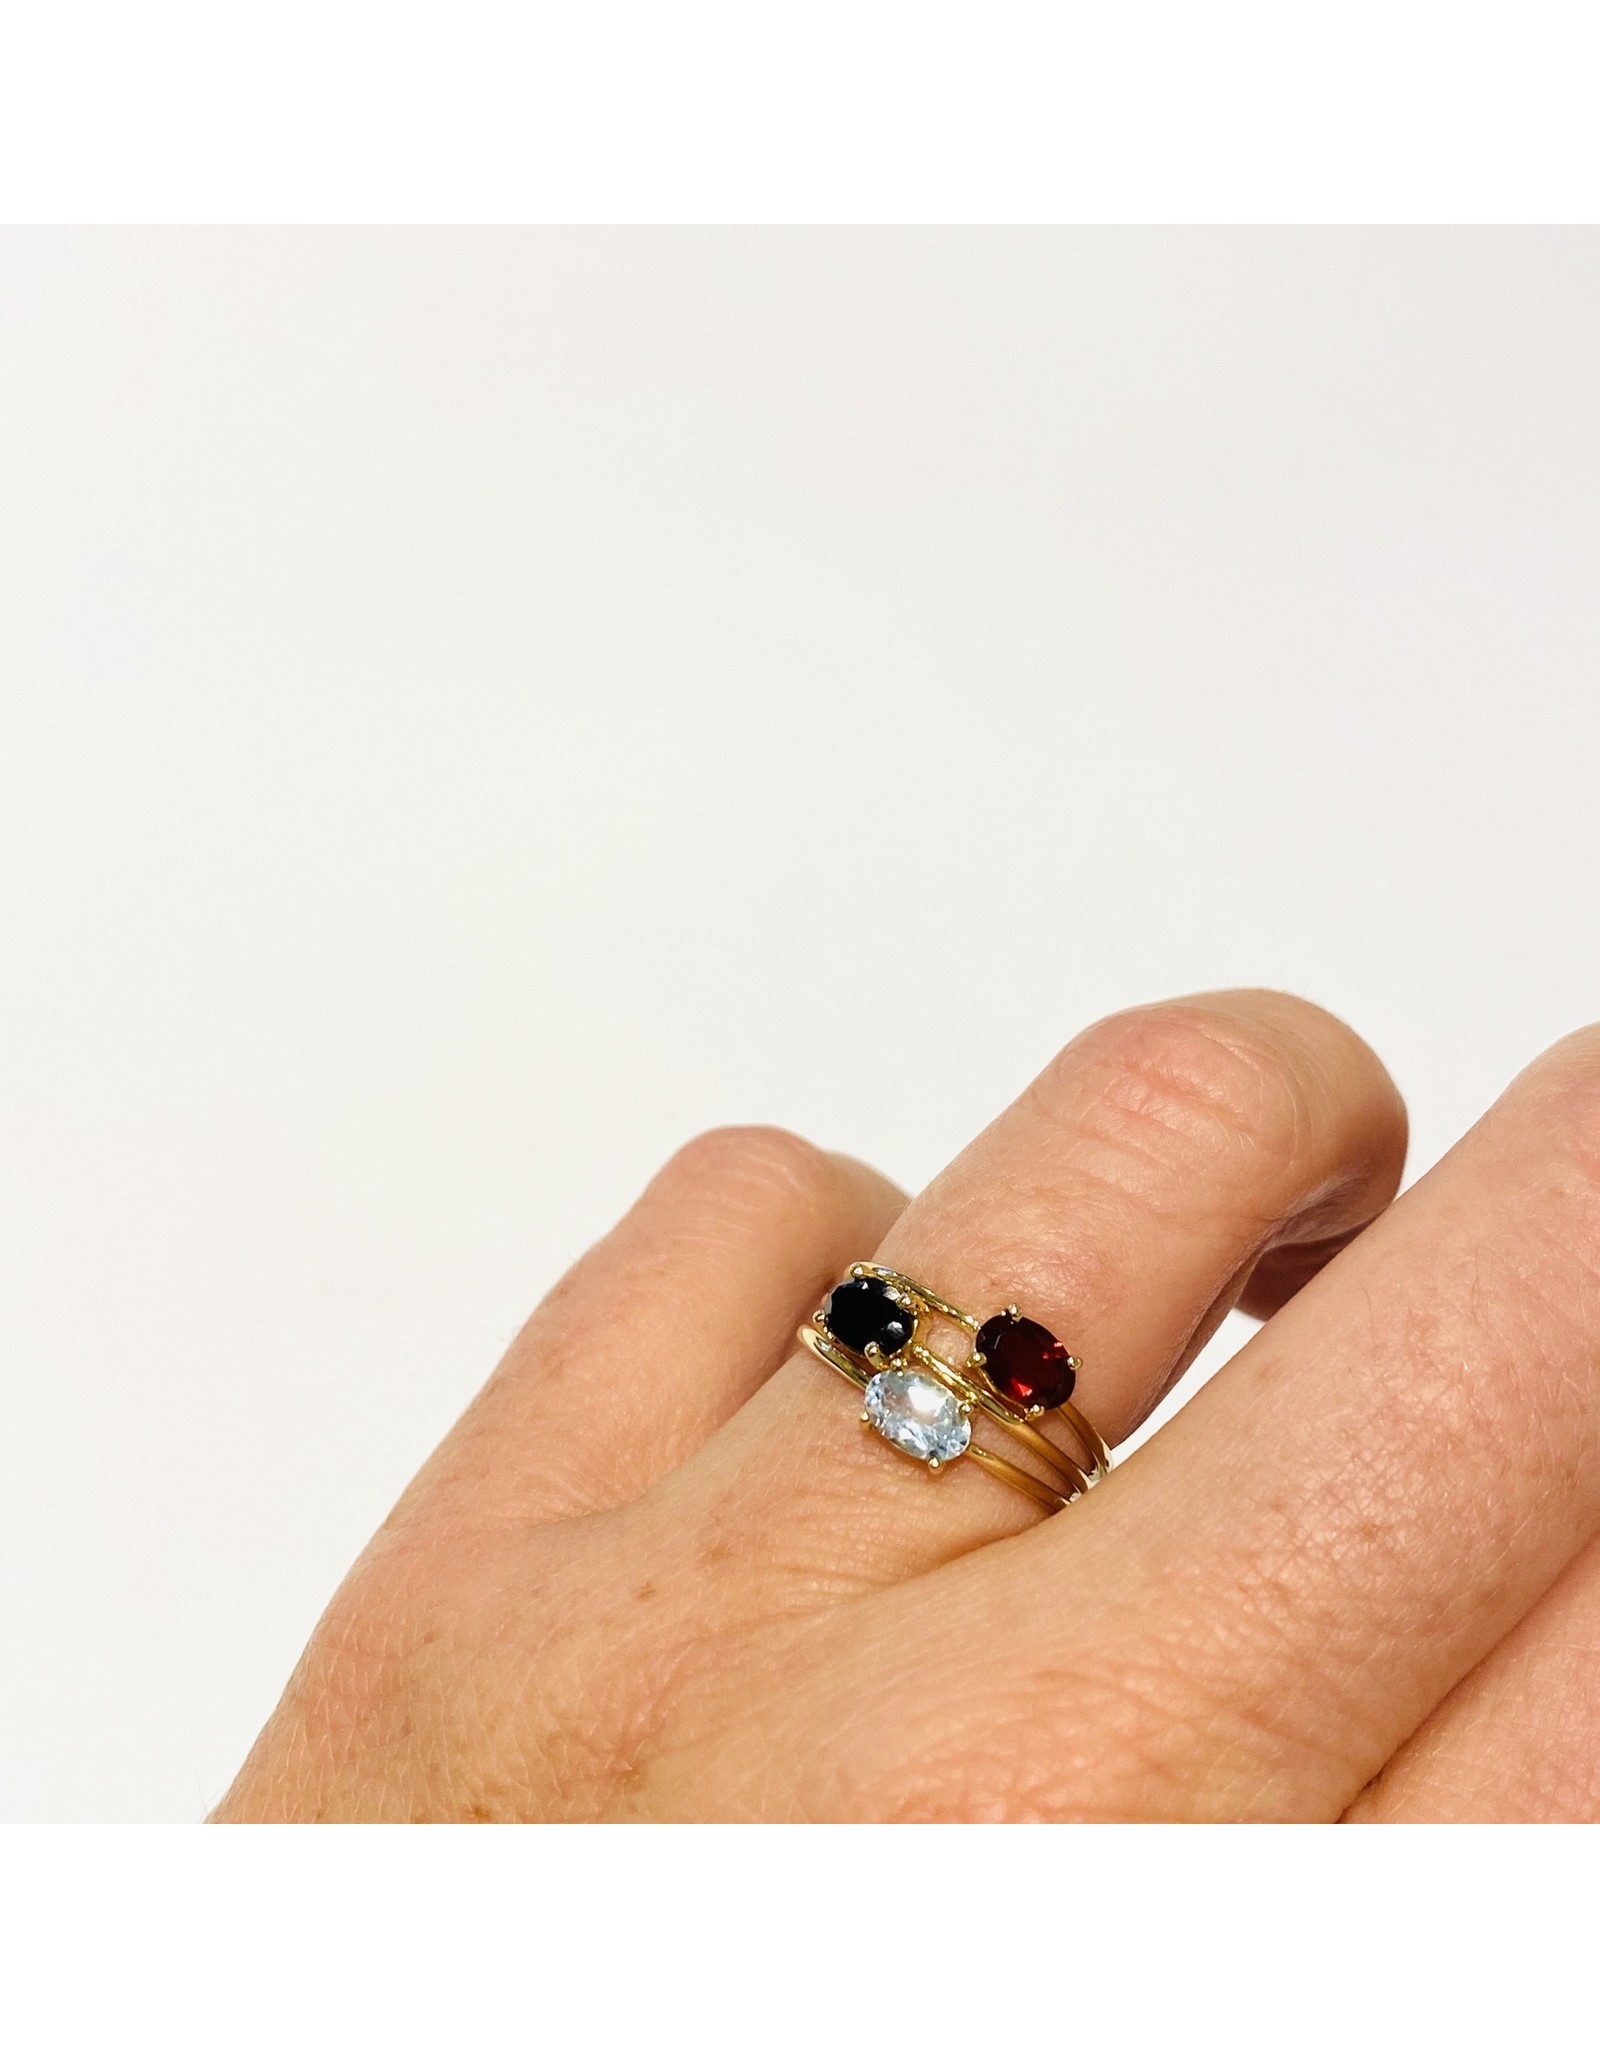 Bo Gold Ring - Gold - Spinel